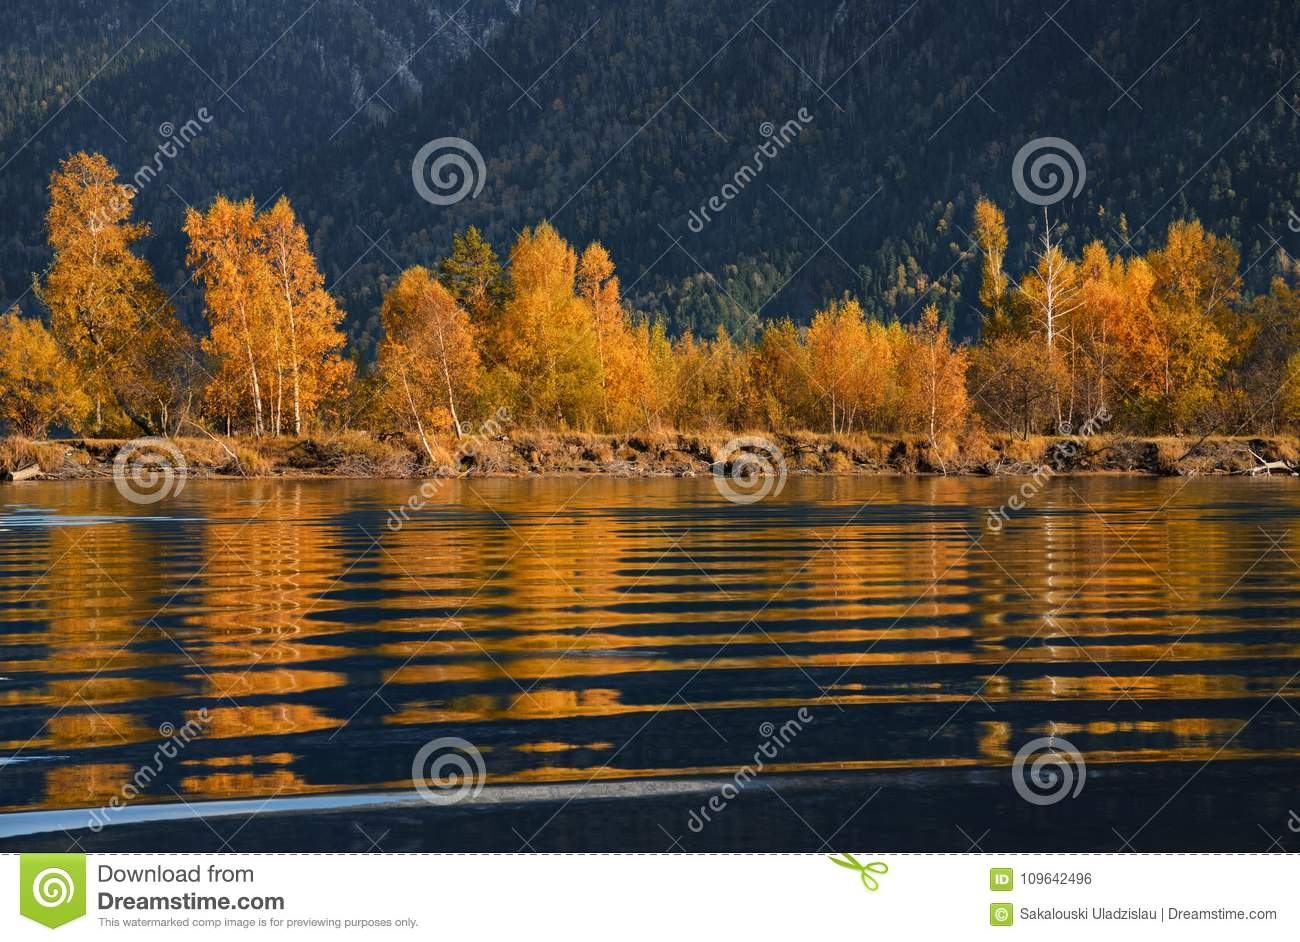 Ripple.Autumn Golden Reflection Of Beerch Trees In Blue Water At Sunset. Colorful Foliage Over Lake With Beautiful Woods In Yellow